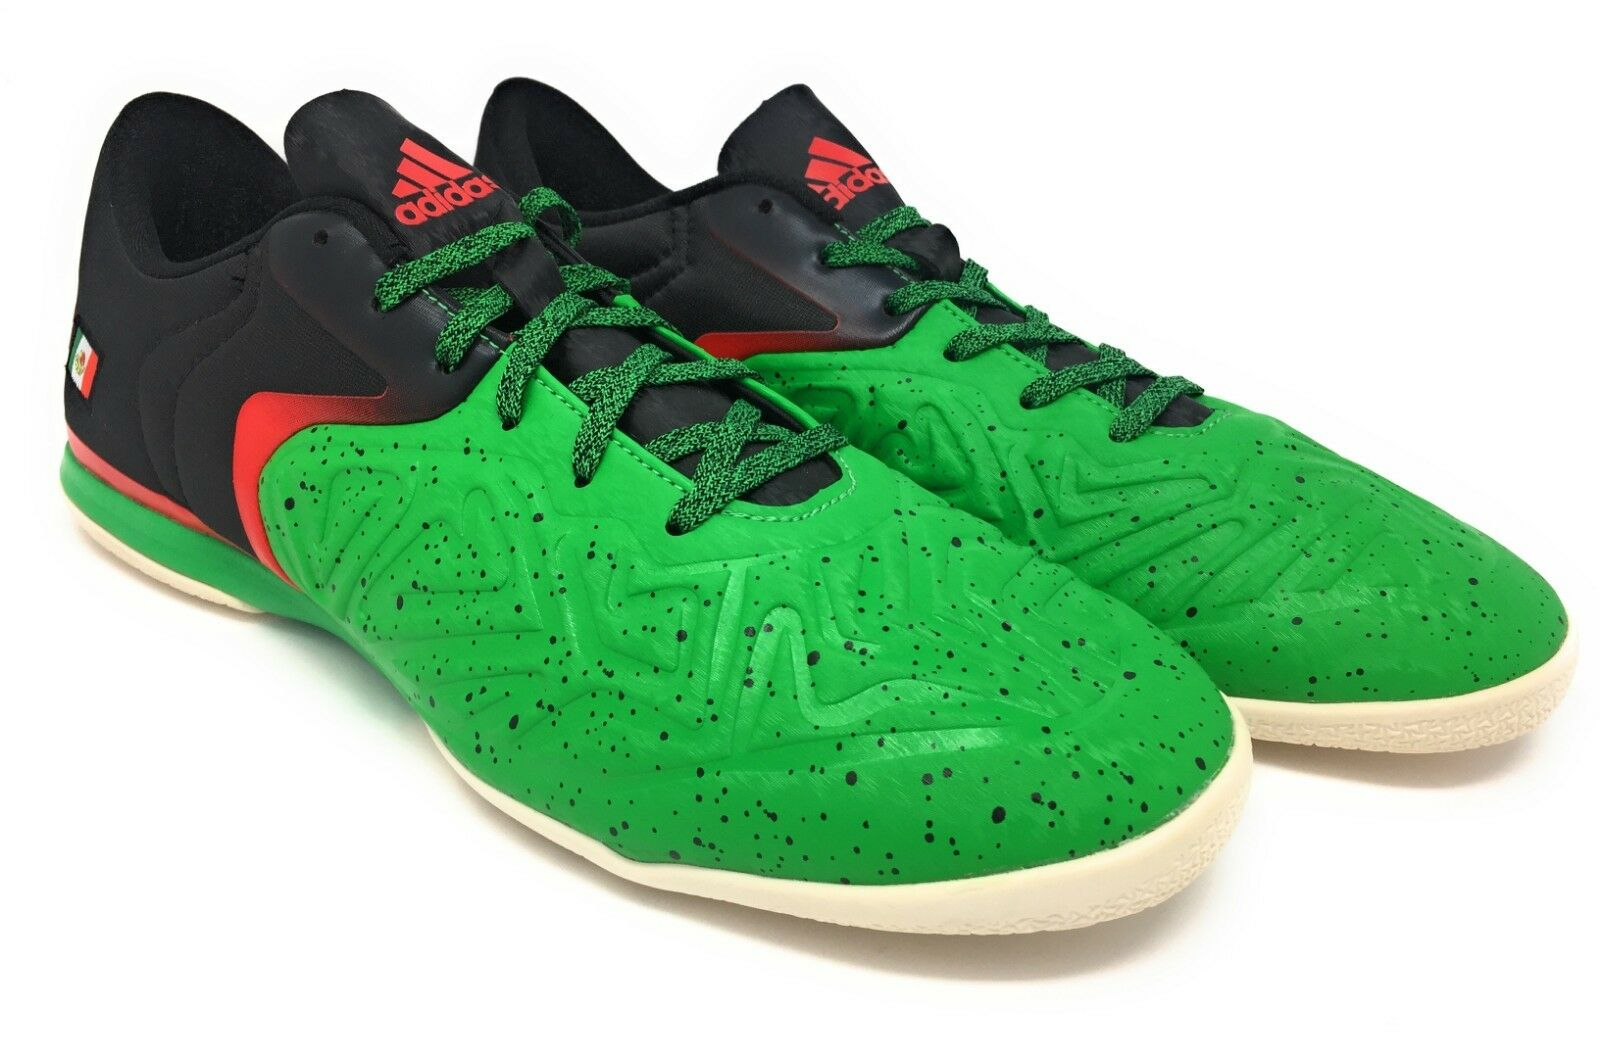 New Mens Adidas 15.2 X Indoor Indoor Indoor Soccer shoes Boots MEXICO colors Size 11 US 13497e